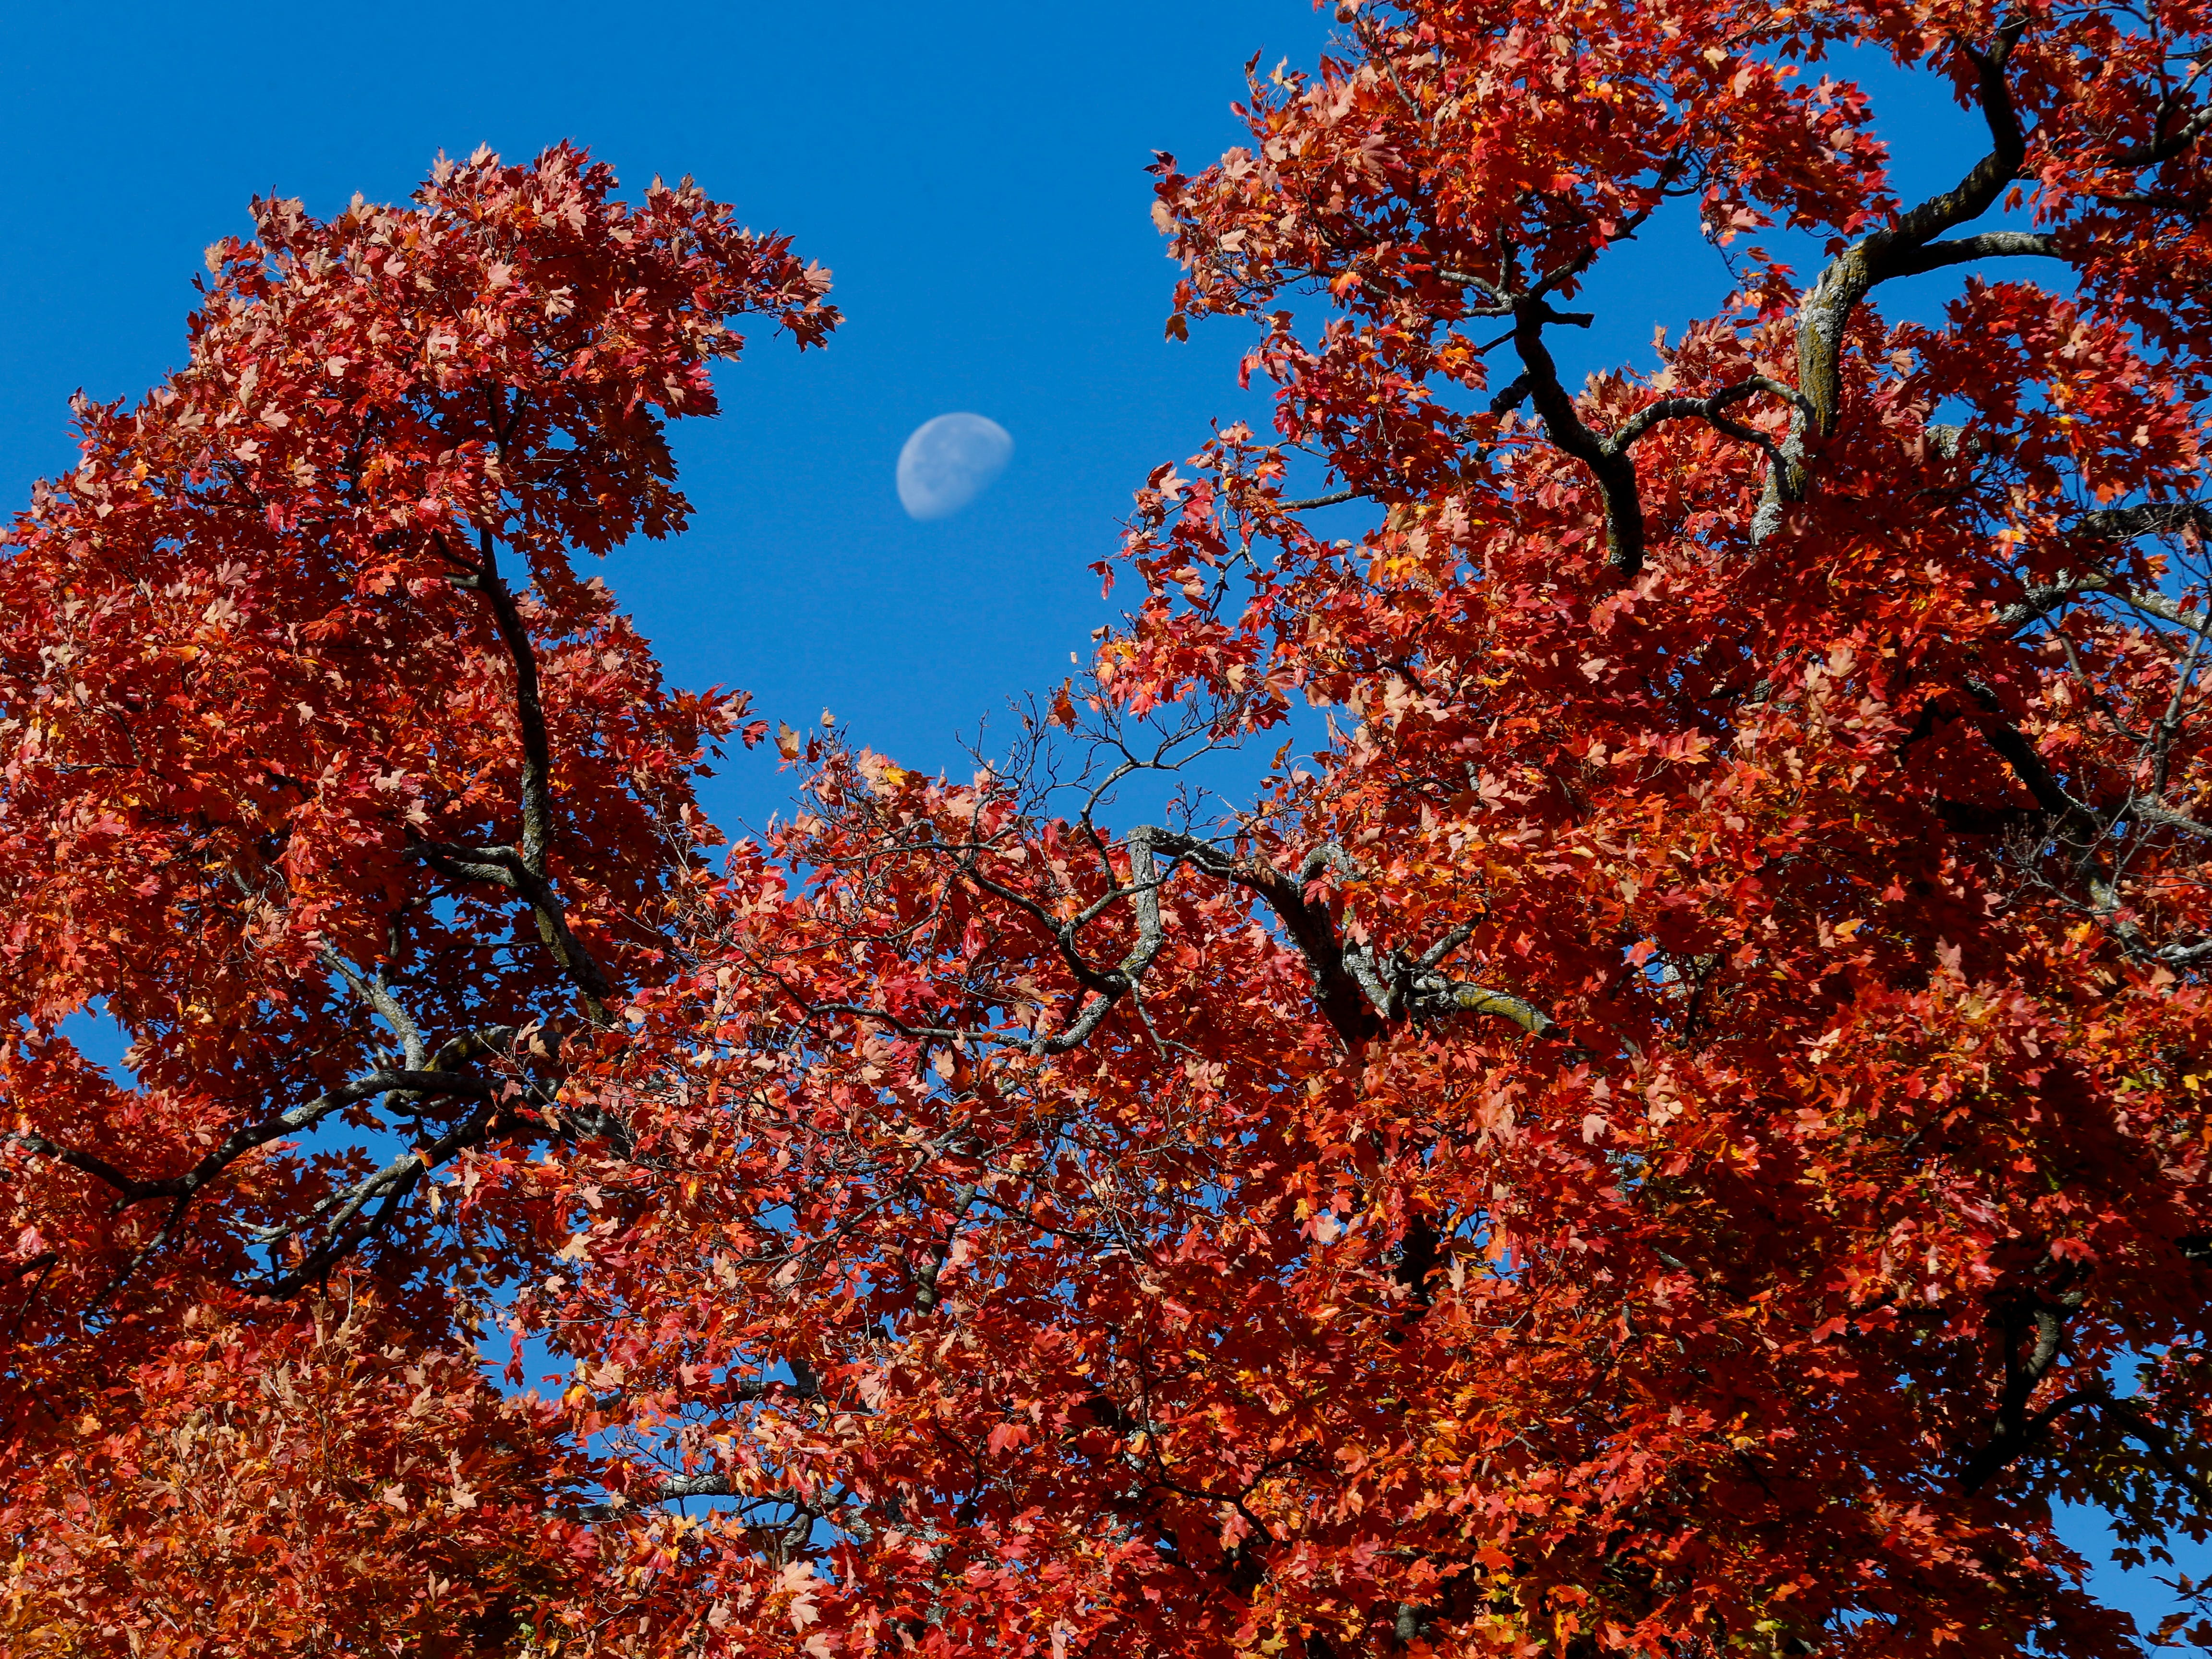 The moon sets behind a colorful tree at Maple Park Cemetery on Monday, Oct. 29, 2018.